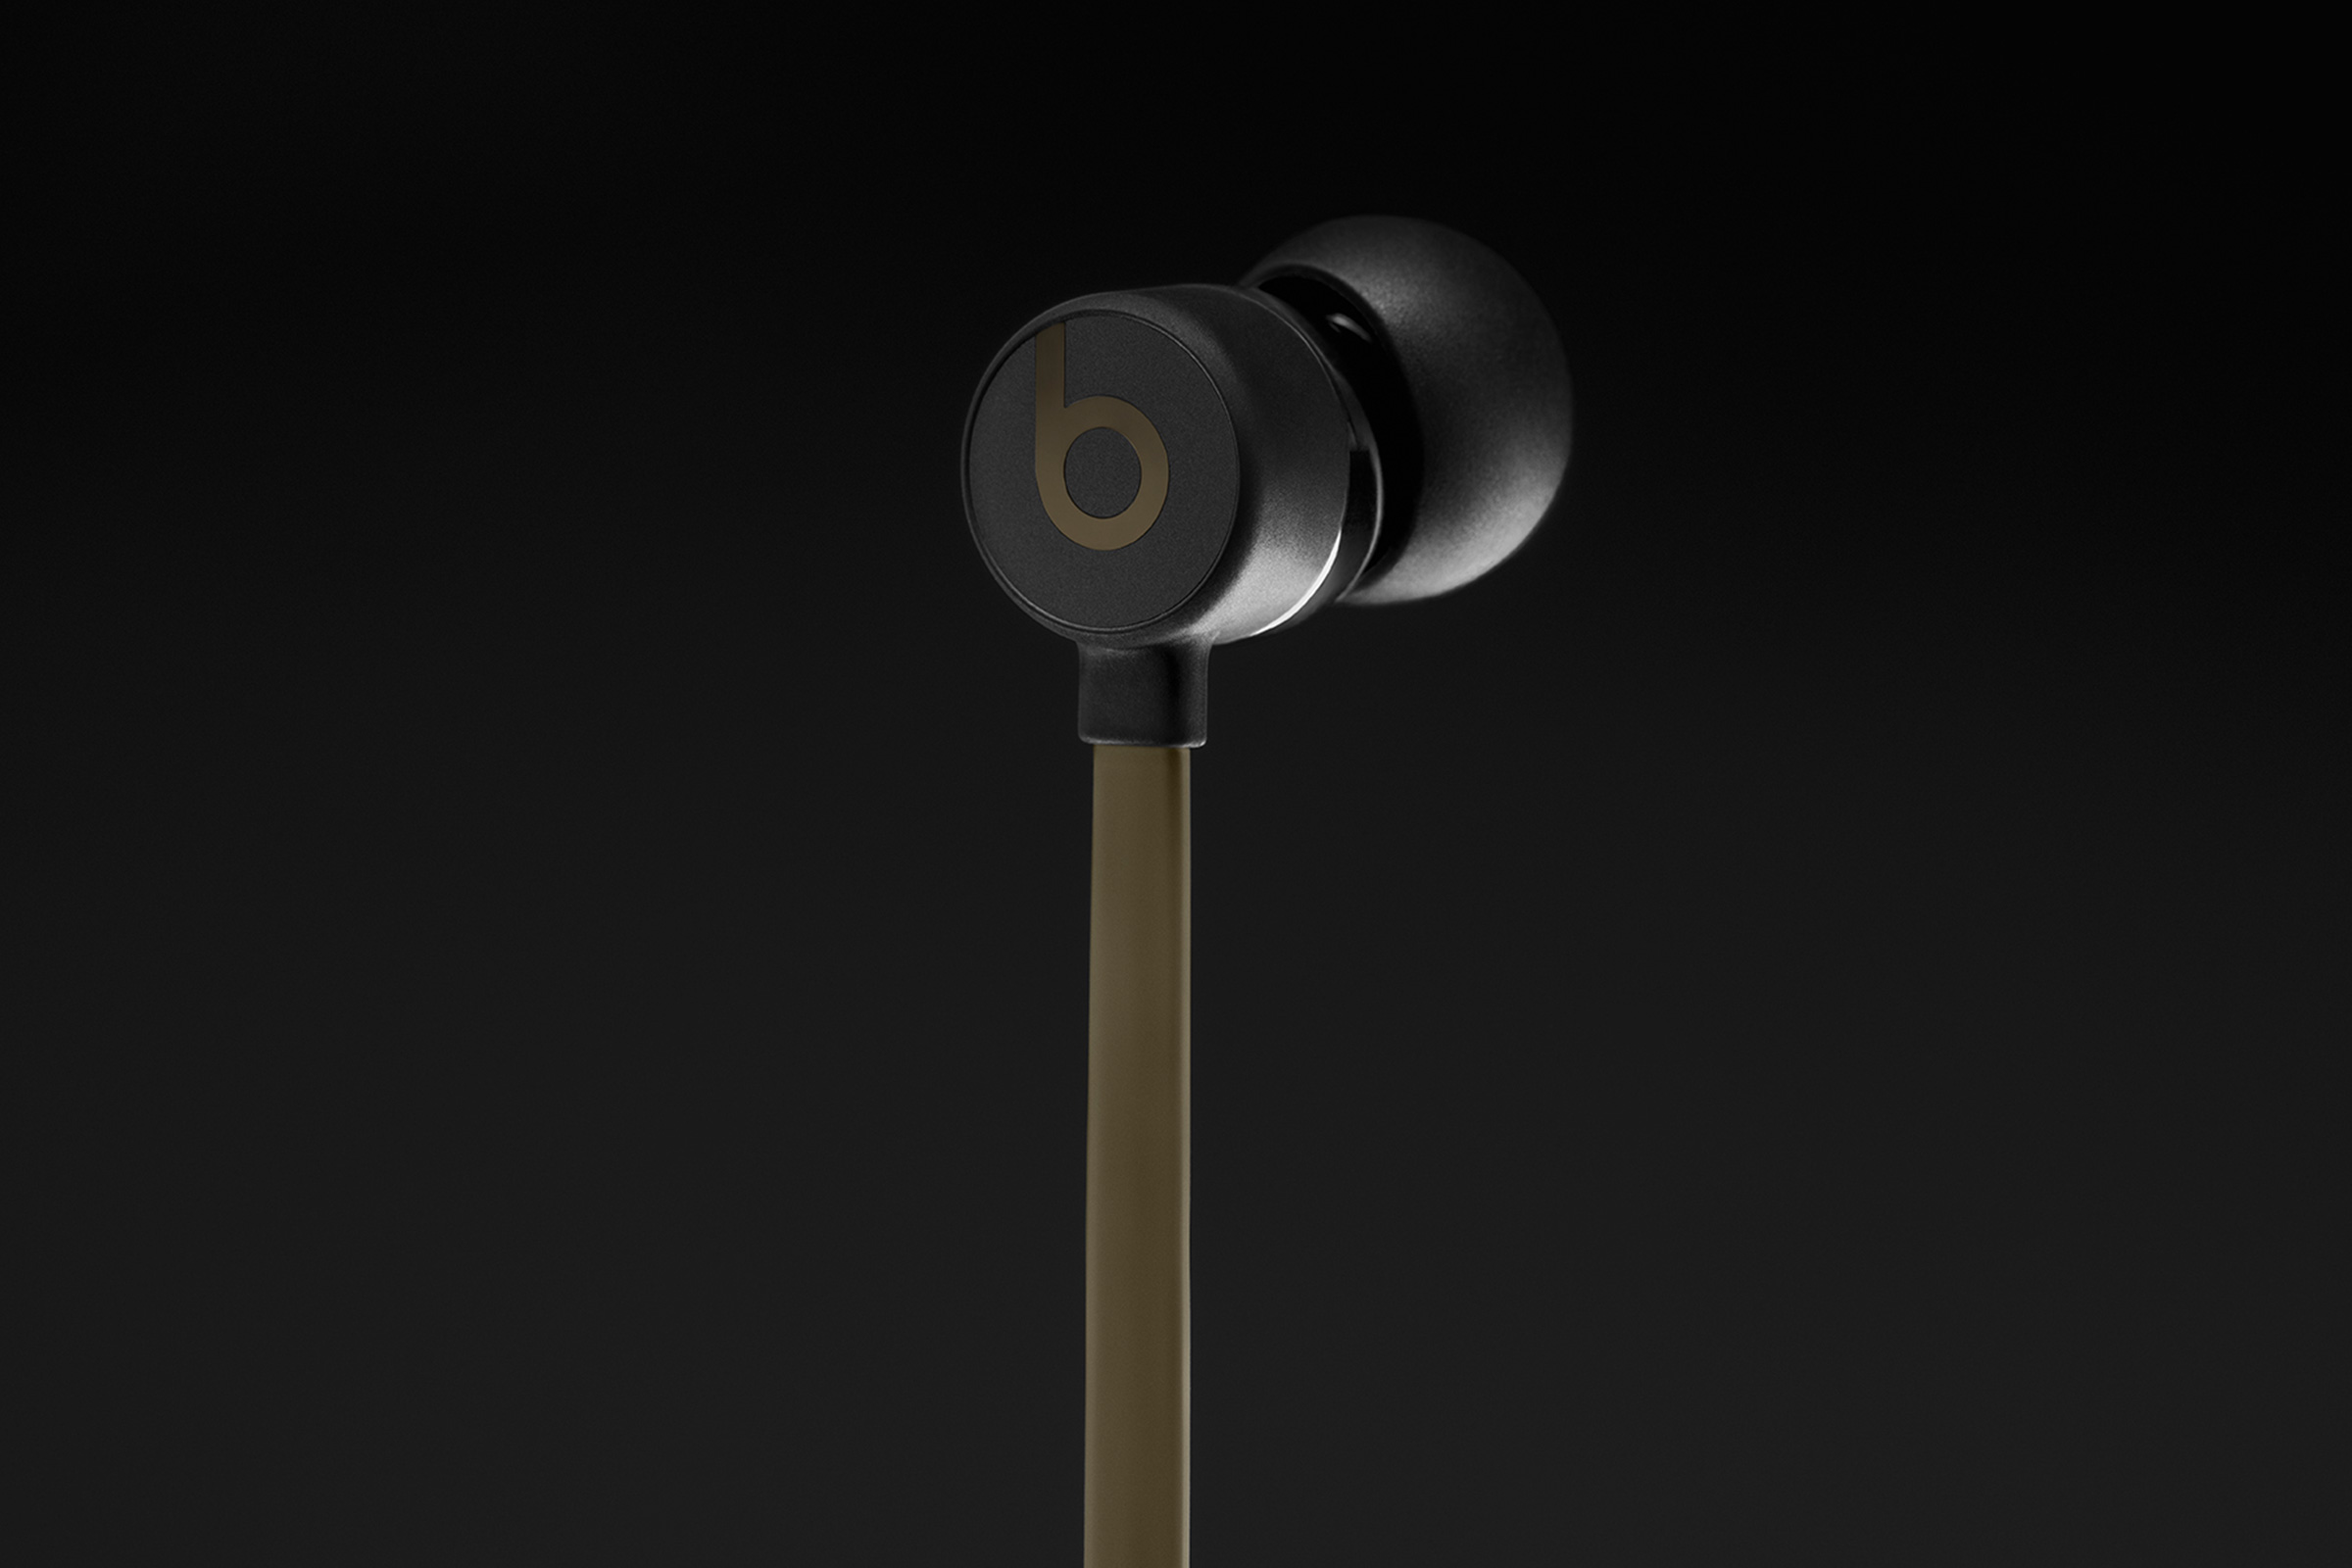 beats_undftd_lookbook_beatsx02_2400x1600